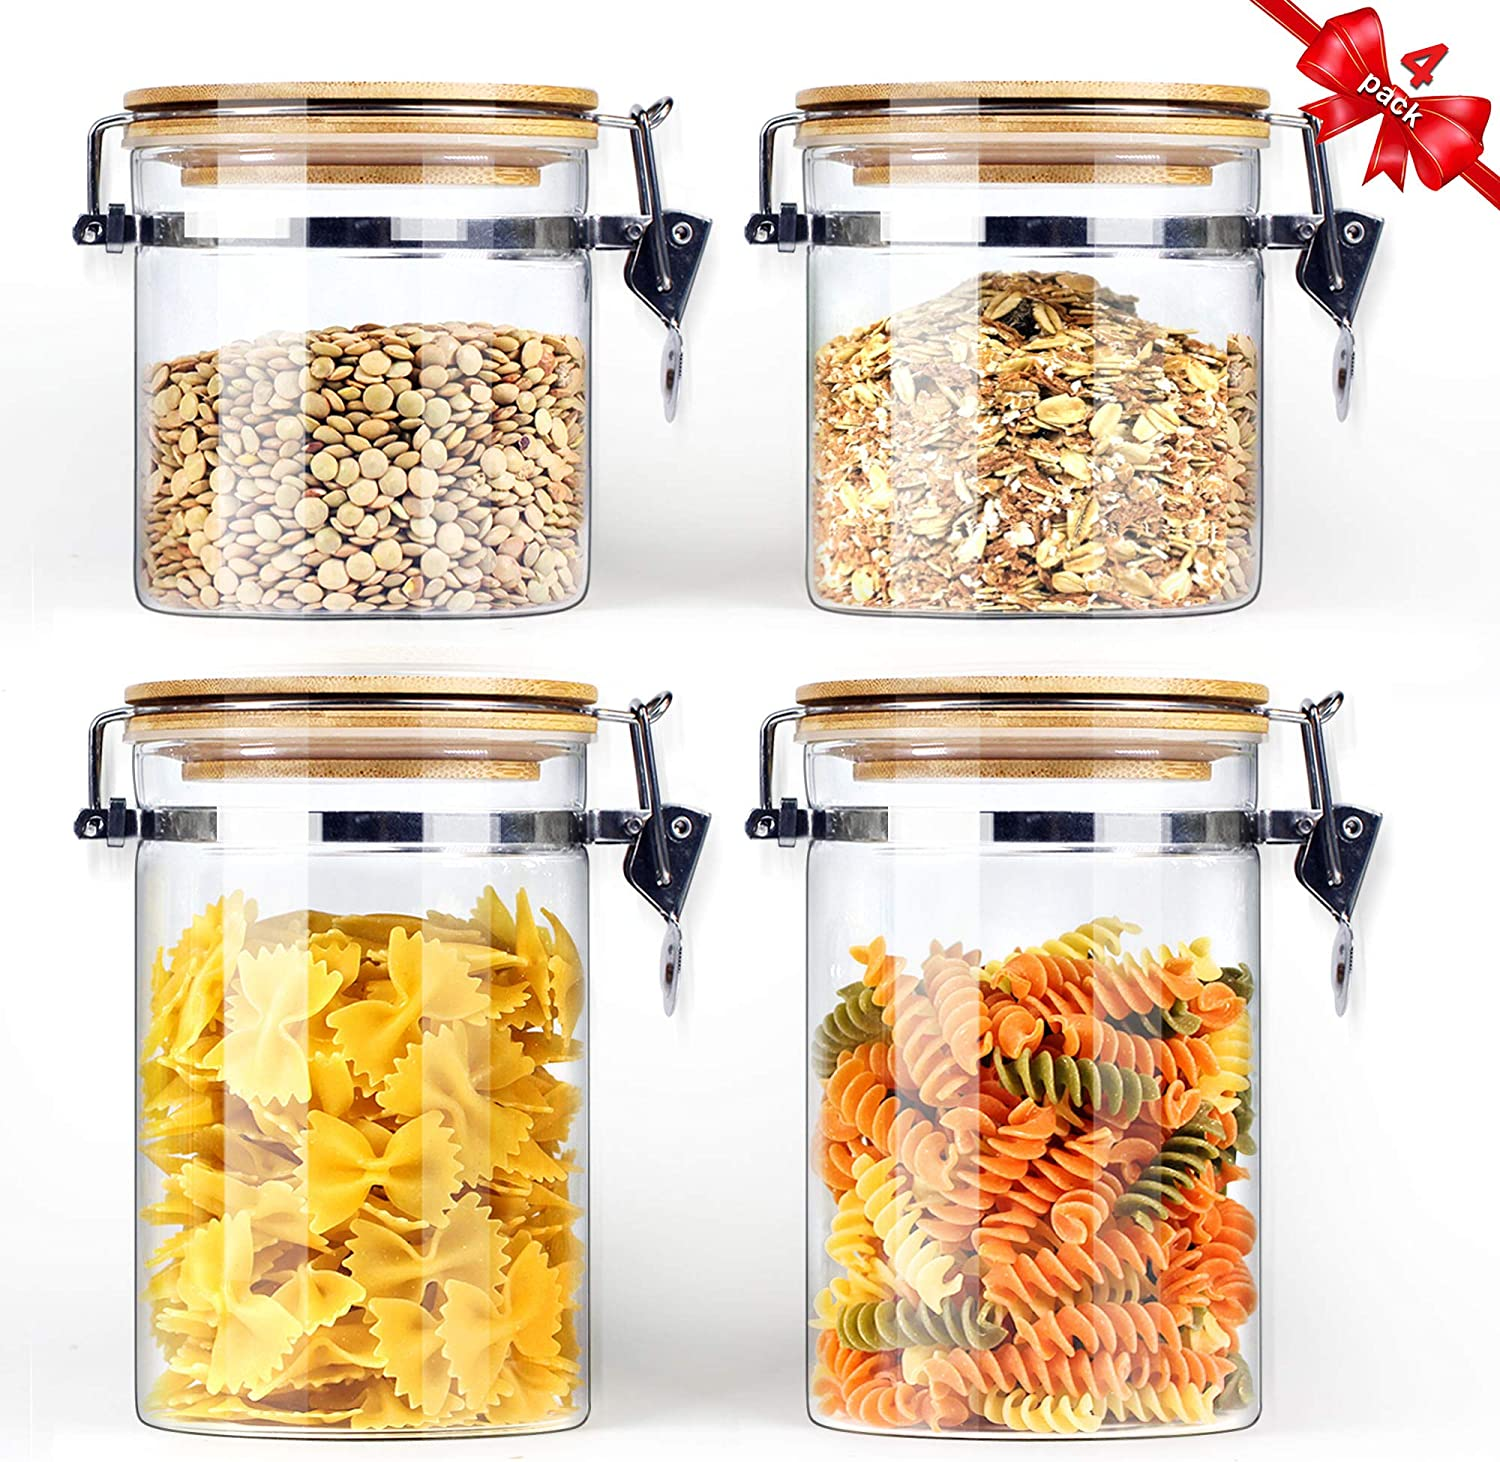 Borosilicate Glass Storage Jars with Airtight Locking Clamp Lids (2 Sets 18oz, 2 Sets 30oz), Airtight Glass Canisters with Locking Lids, Glass Storage Containers Bamboo Lid, Food Storage Container